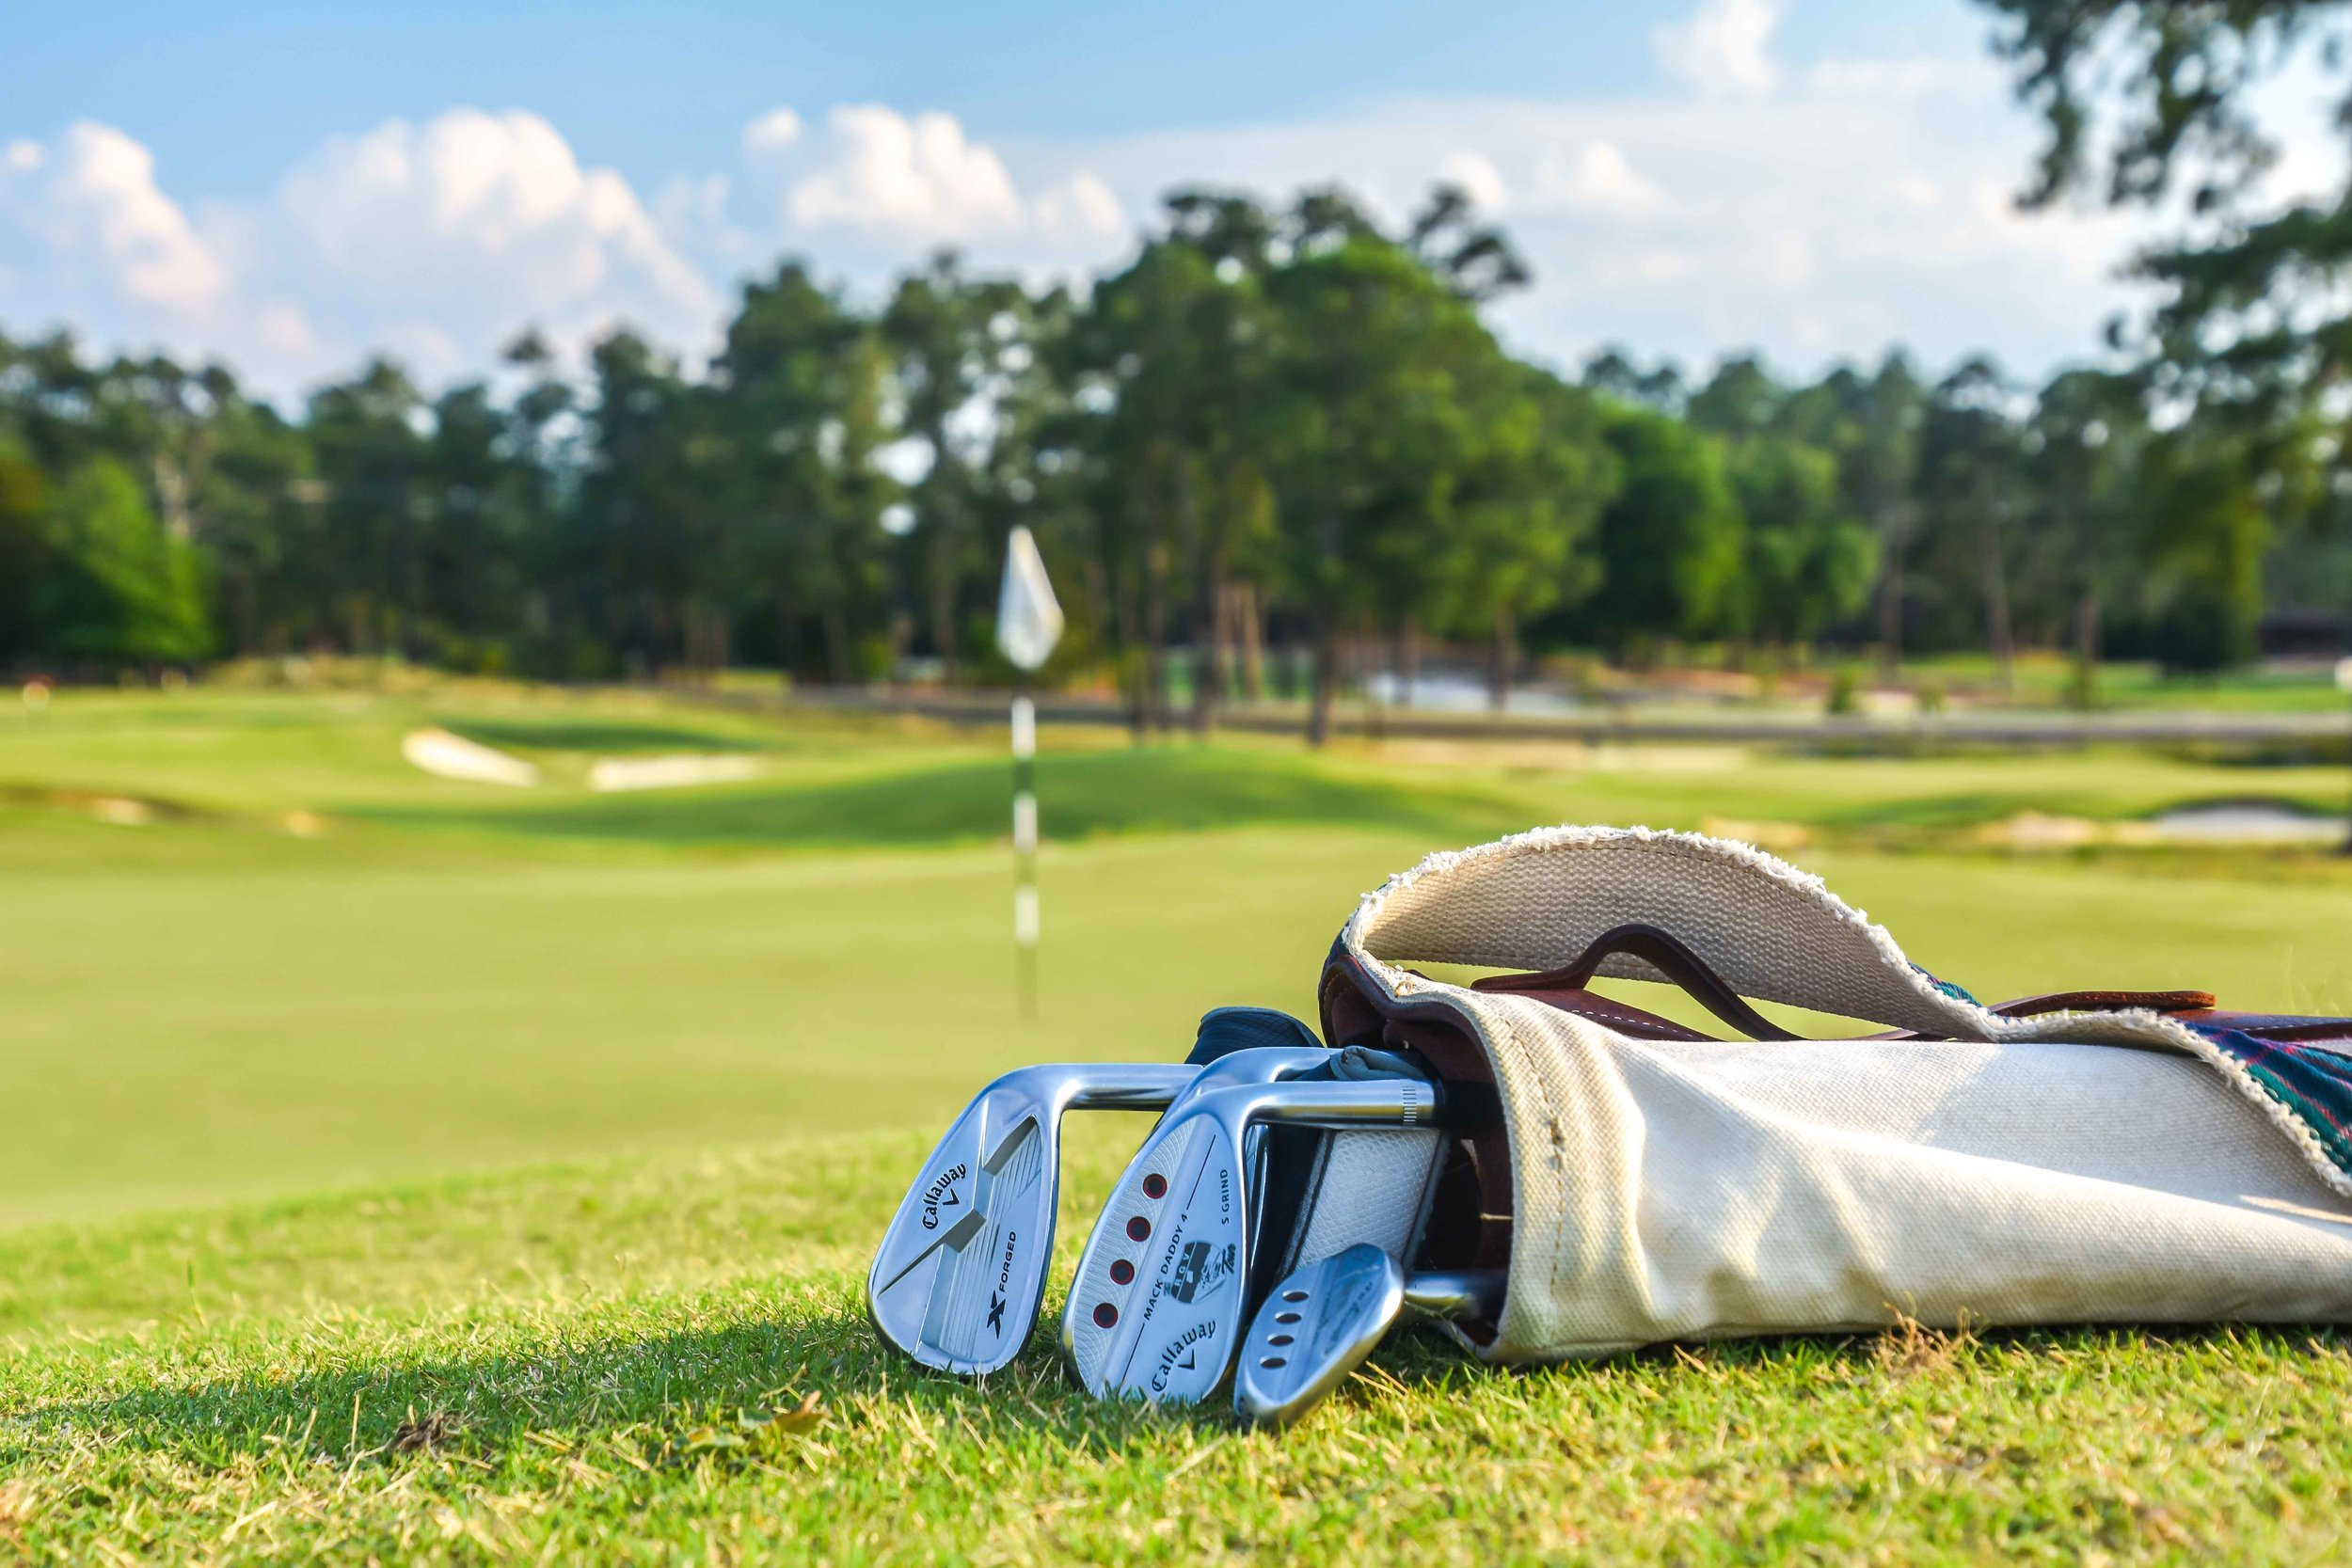 Pinehurst gives you a nice little carry bag to use for your round at The Cradle par 3 course.